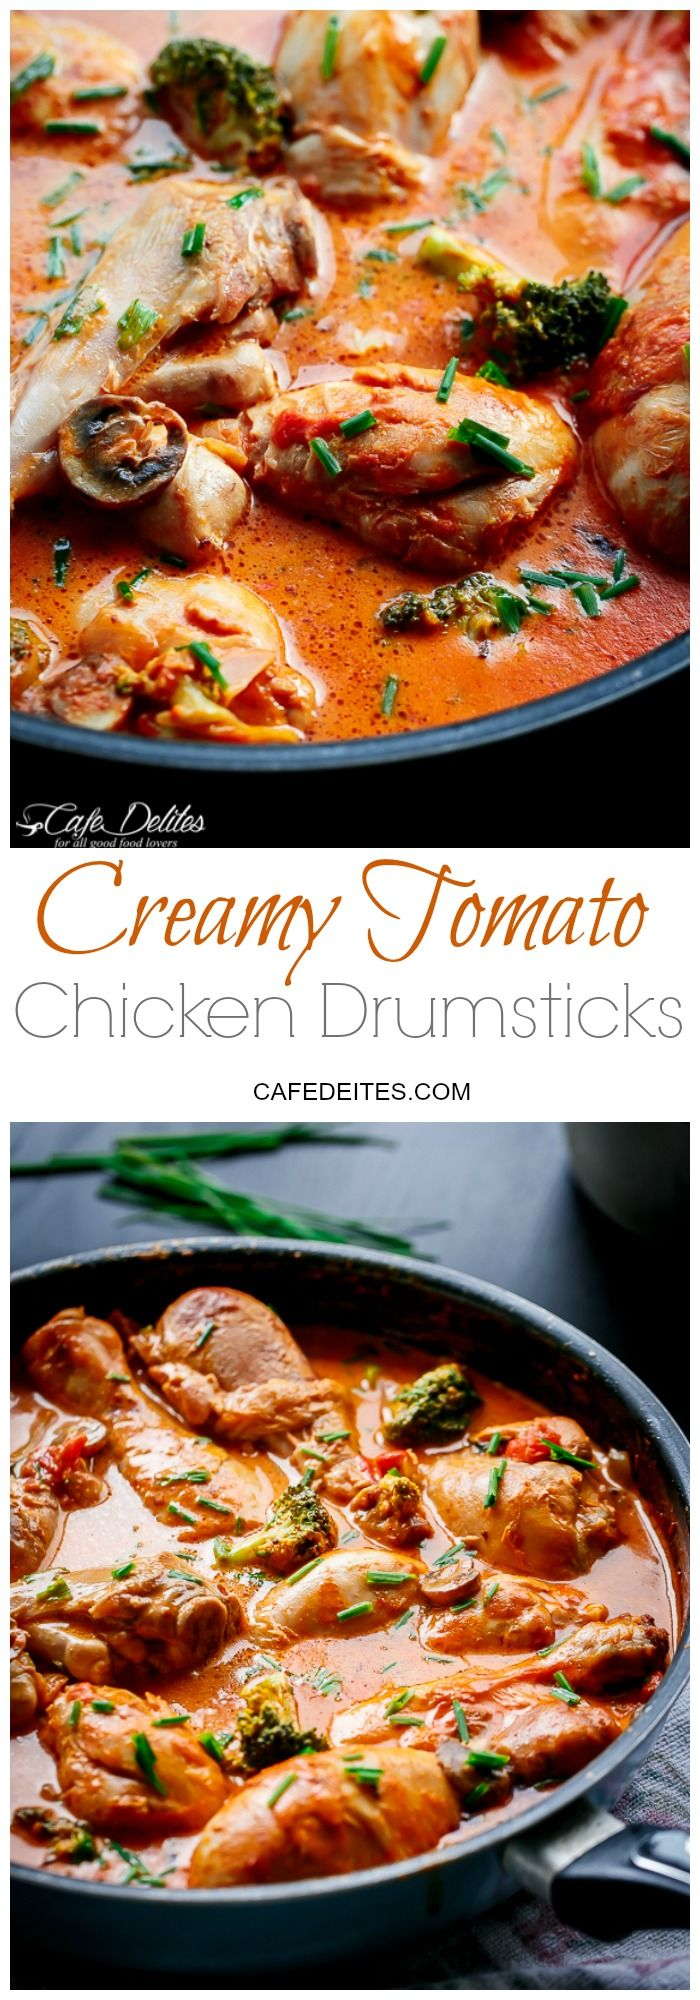 One Pan Creamy Tomato Chicken Drumsticks | http://cafedelites.com